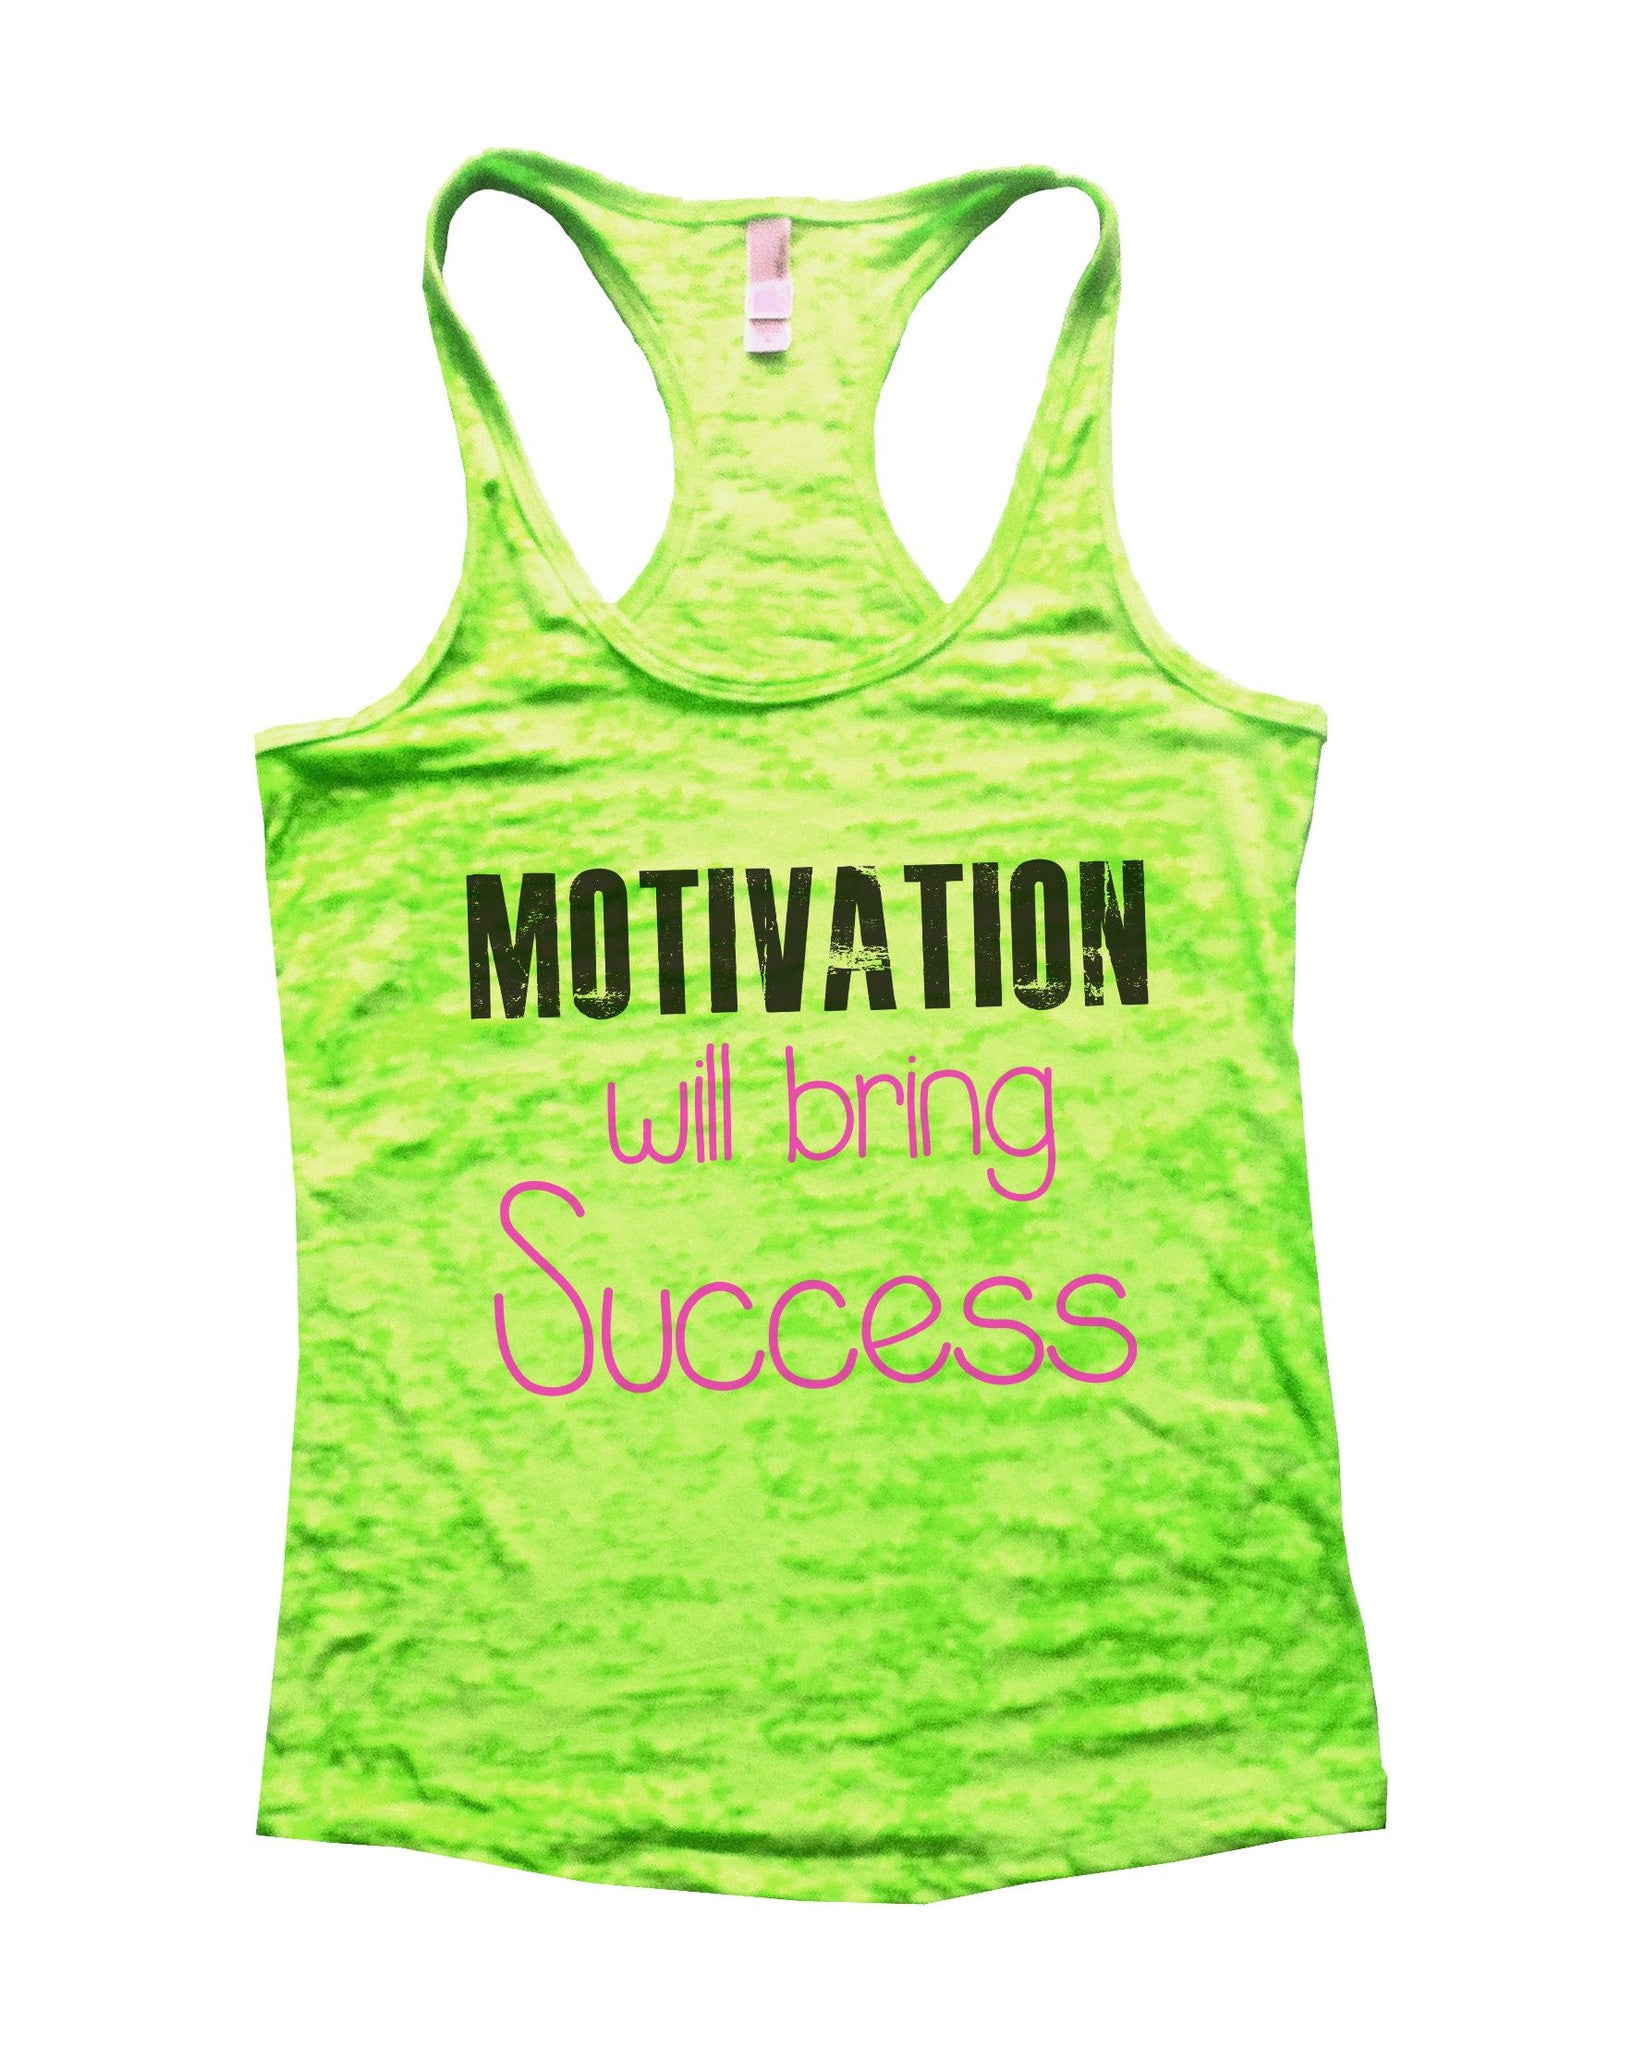 Motivation Will Bring Success Burnout Tank Top By BurnoutTankTops.com - 682 - Funny Shirts Tank Tops Burnouts and Triblends  - 3